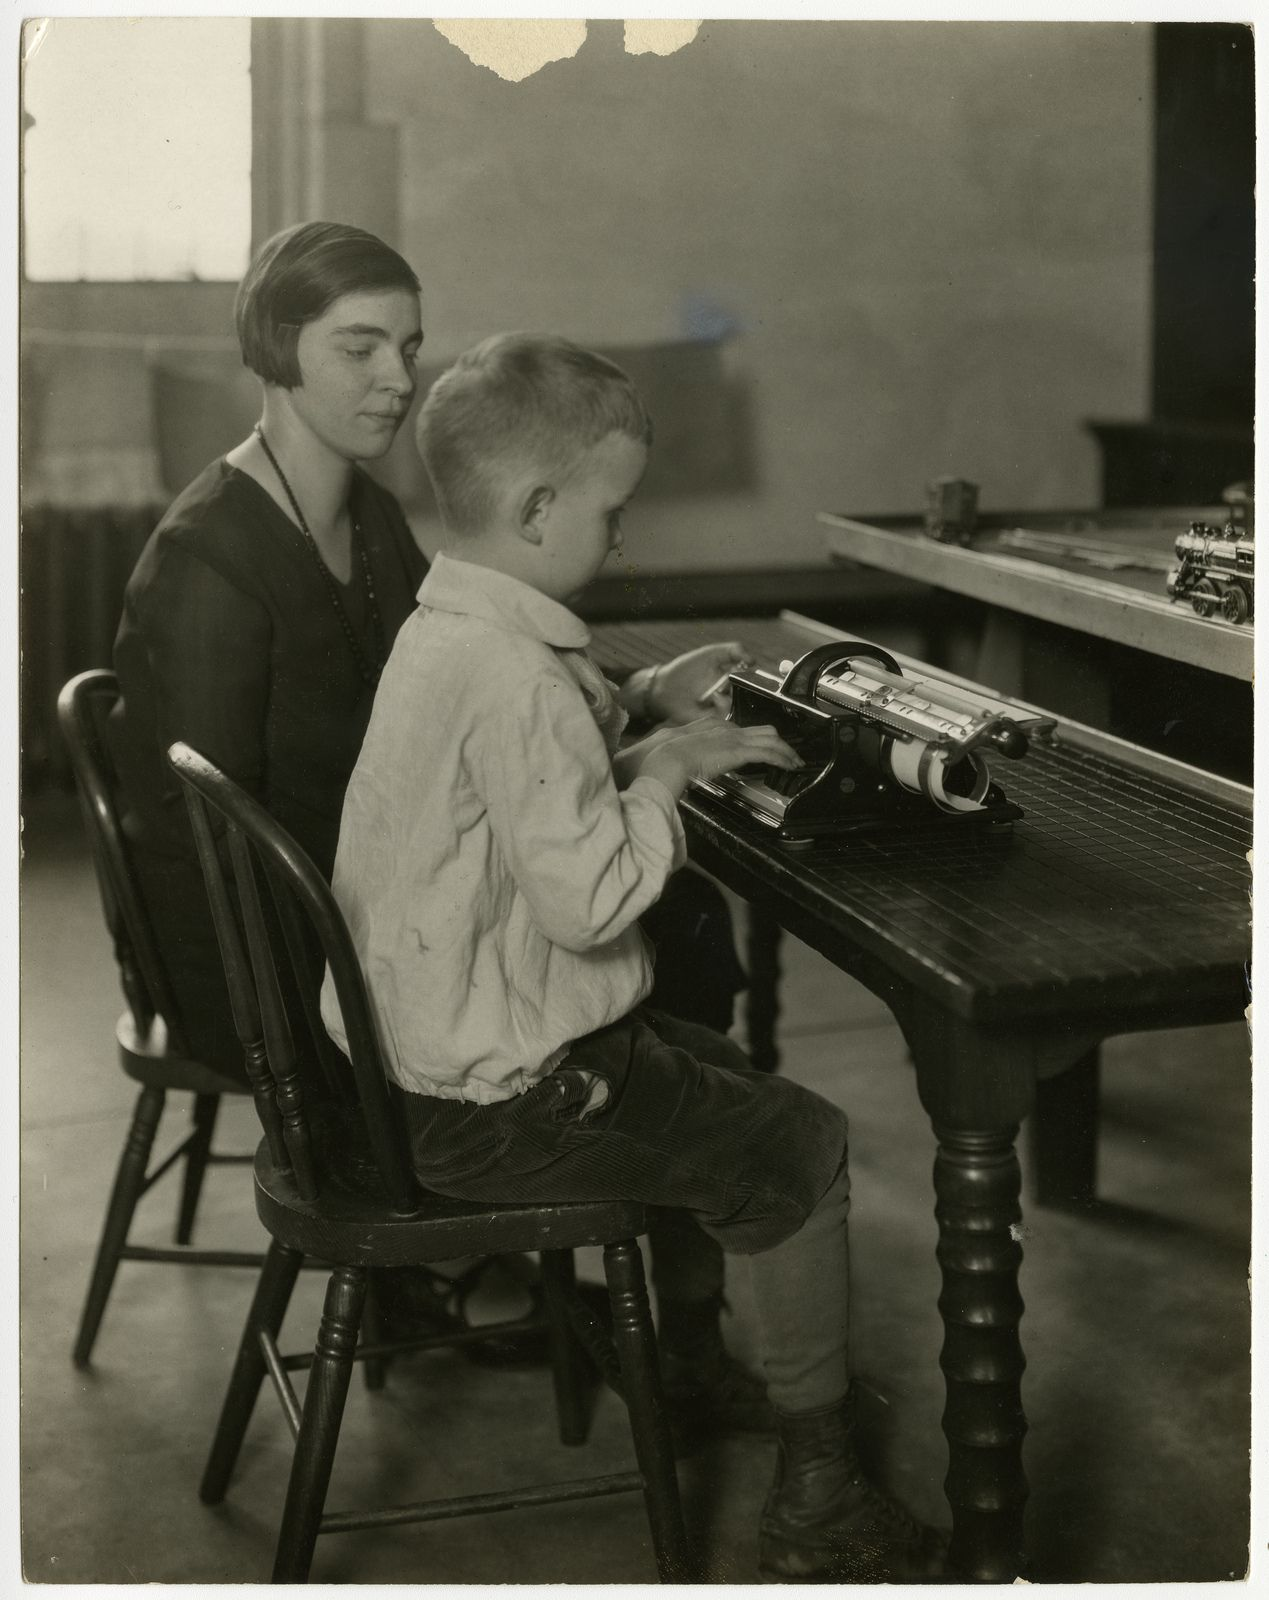 Student writing on a brailer, Perkins Institution for the Blind, 1929